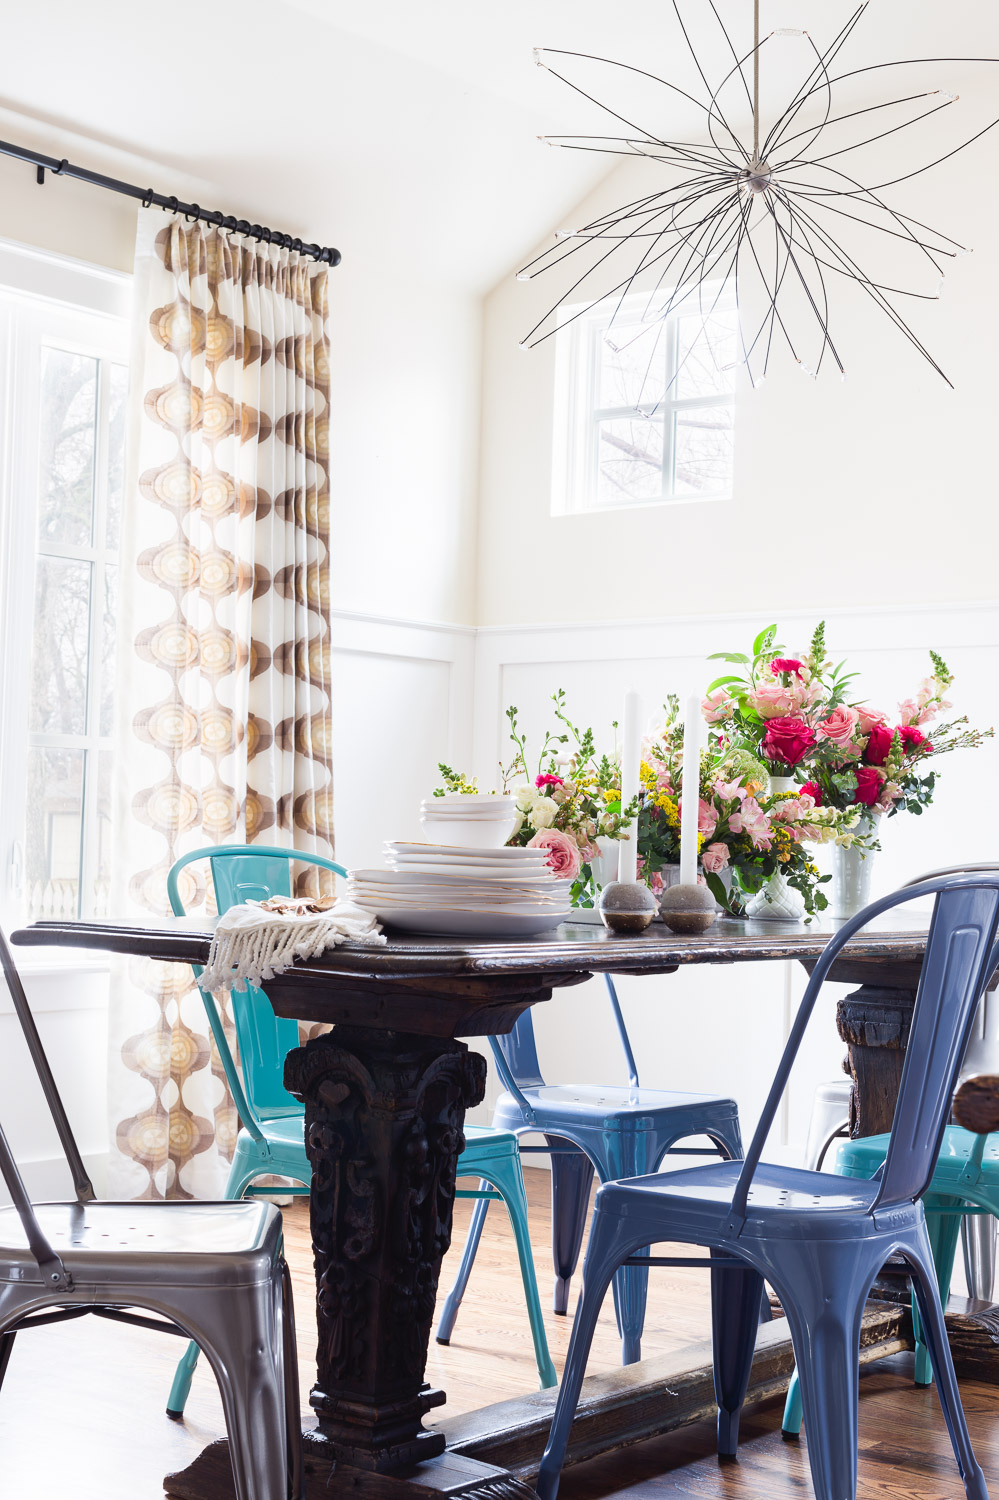 Shades of blue tolix chairs in dining room via Rue Mag